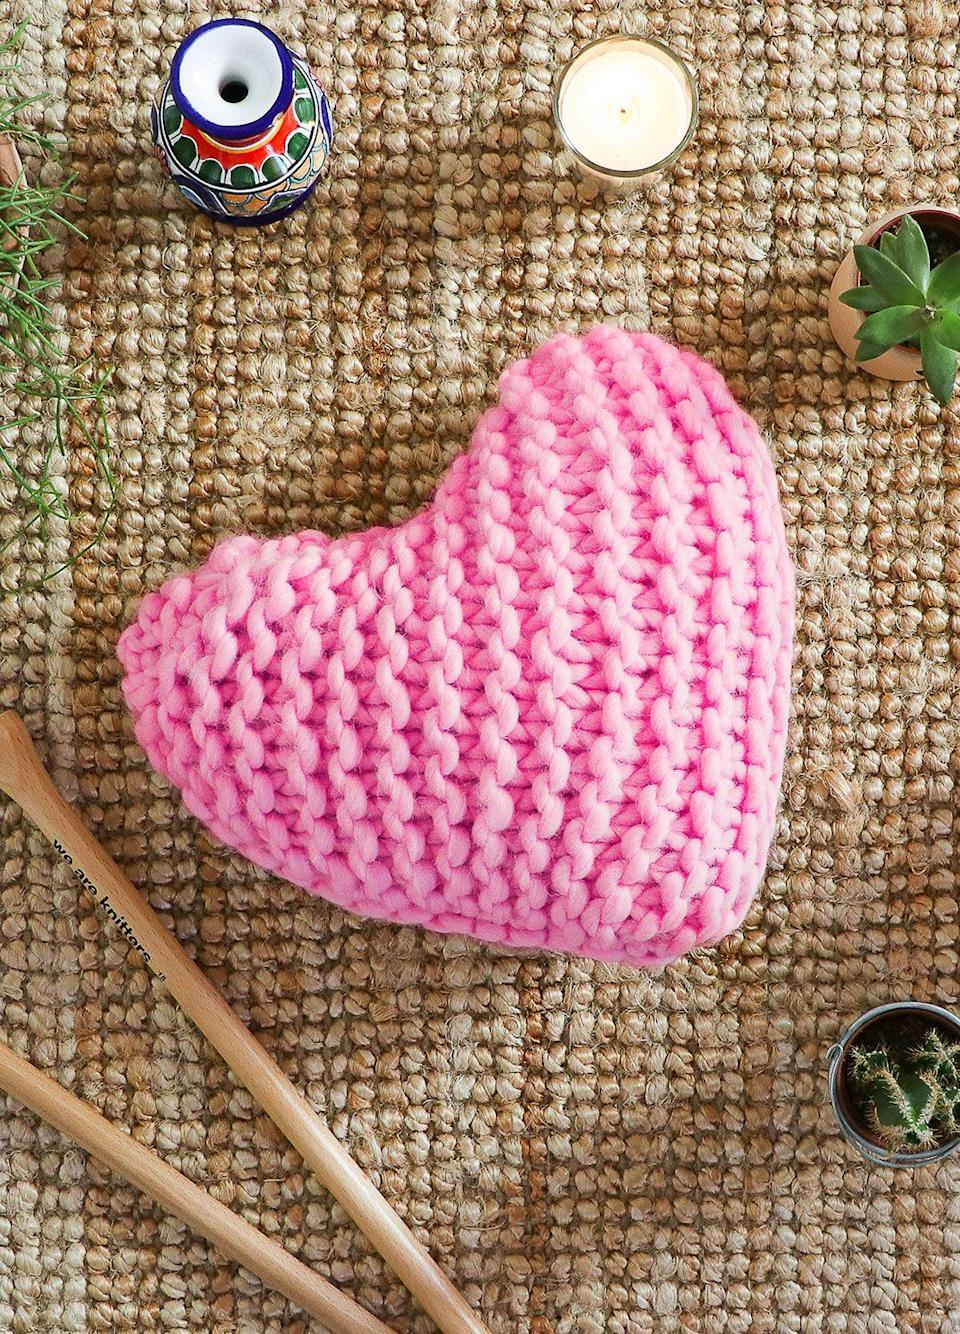 """<p>weareknitters.com</p><p><strong>$49.50</strong></p><p><a href=""""https://www.weareknitters.com/knitting-kit/knitting-levels/easy-level/happy-cushion"""" rel=""""nofollow noopener"""" target=""""_blank"""" data-ylk=""""slk:Shop Now"""" class=""""link rapid-noclick-resp"""">Shop Now</a></p><p>Pass on your love of knitting with this easy kit for beginners.</p>"""